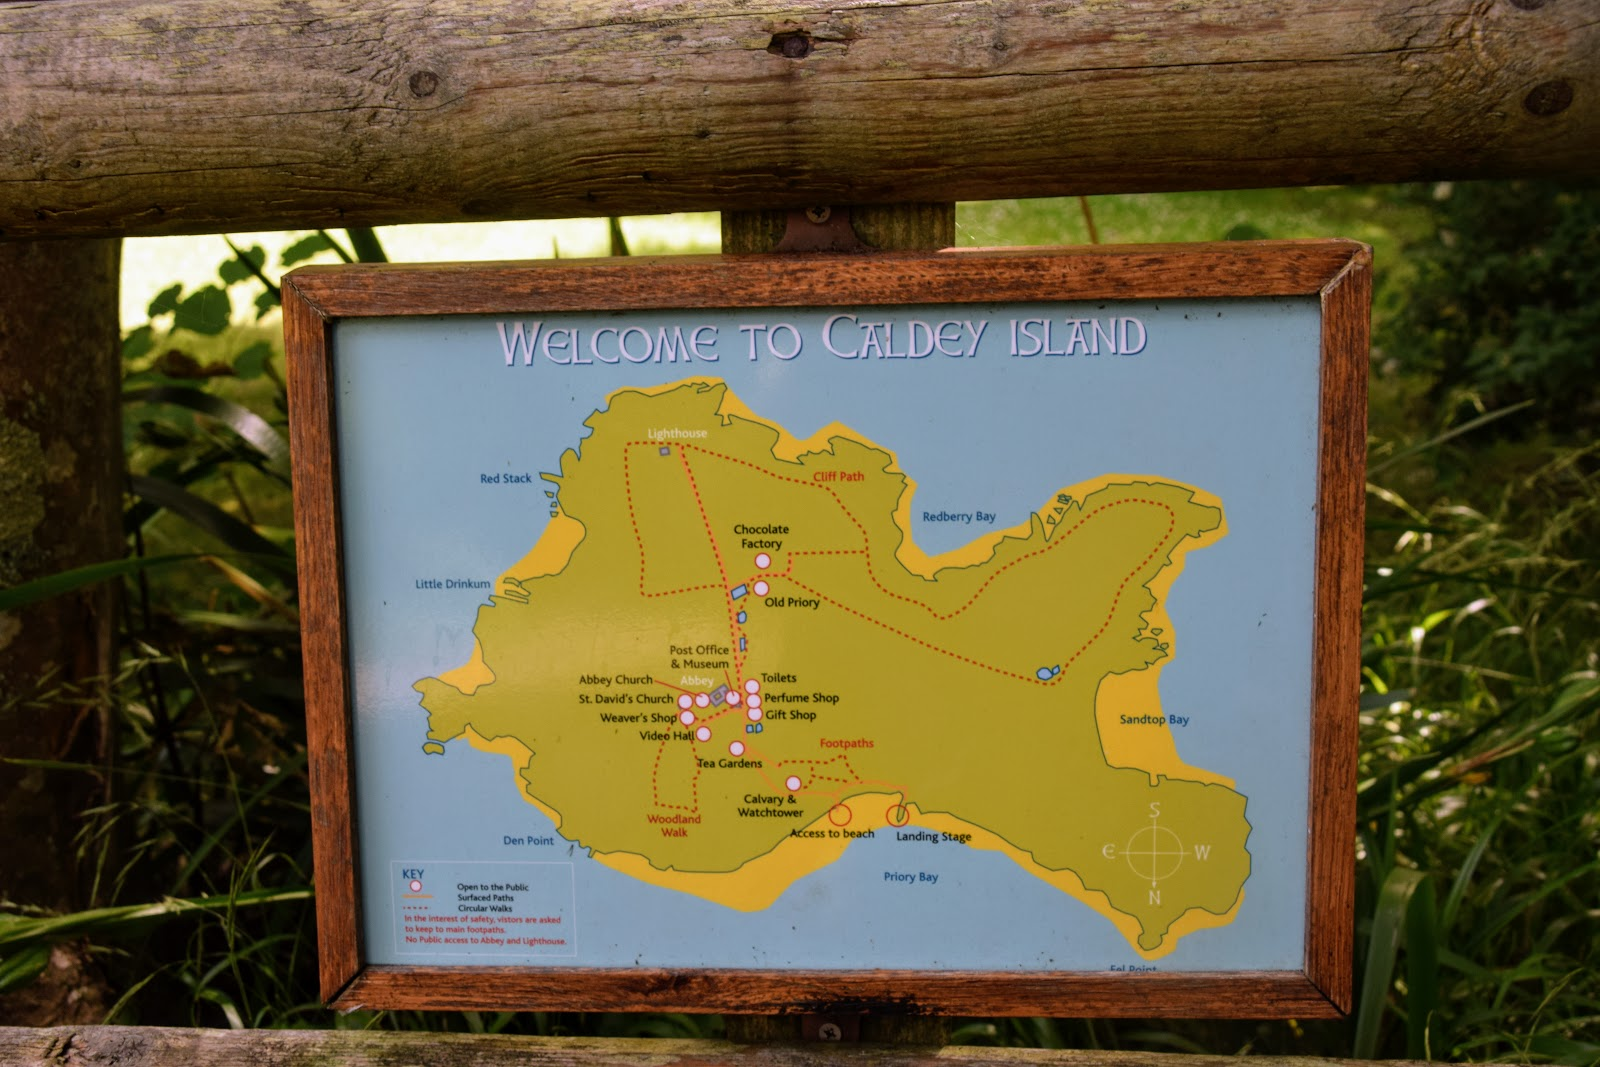 , The John Muir Award- Our Visit to Caldey Island